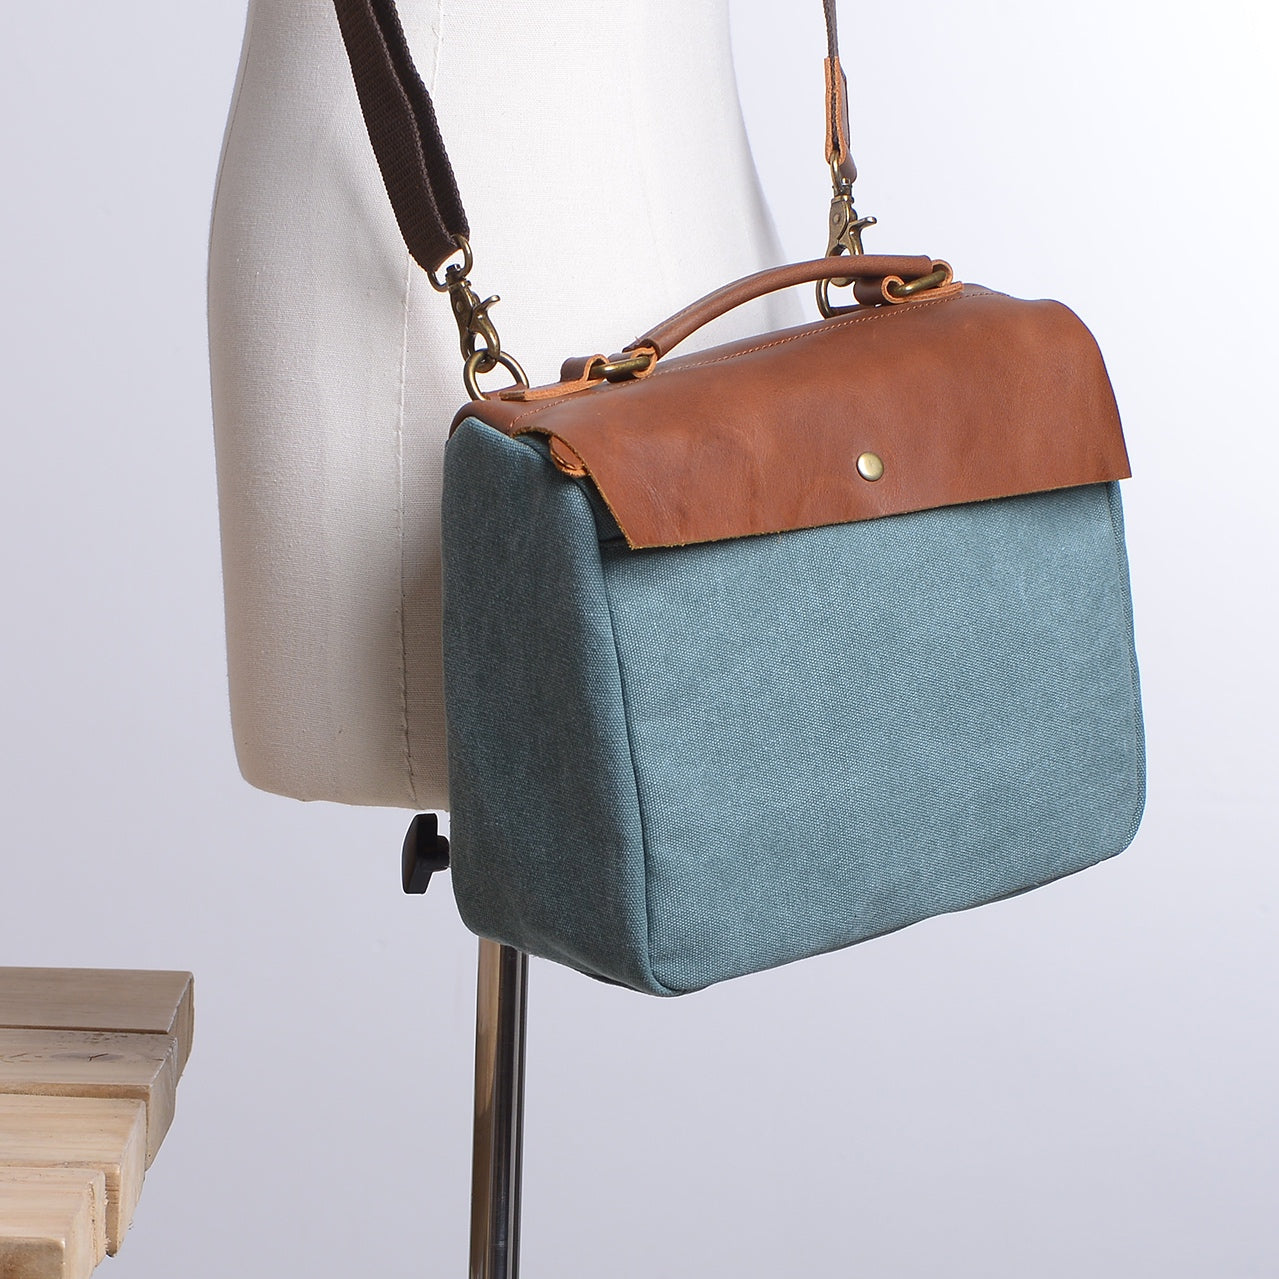 Canvas Handmade Women's Handbags Message Bags Bridesmaid's Gifts - icambag